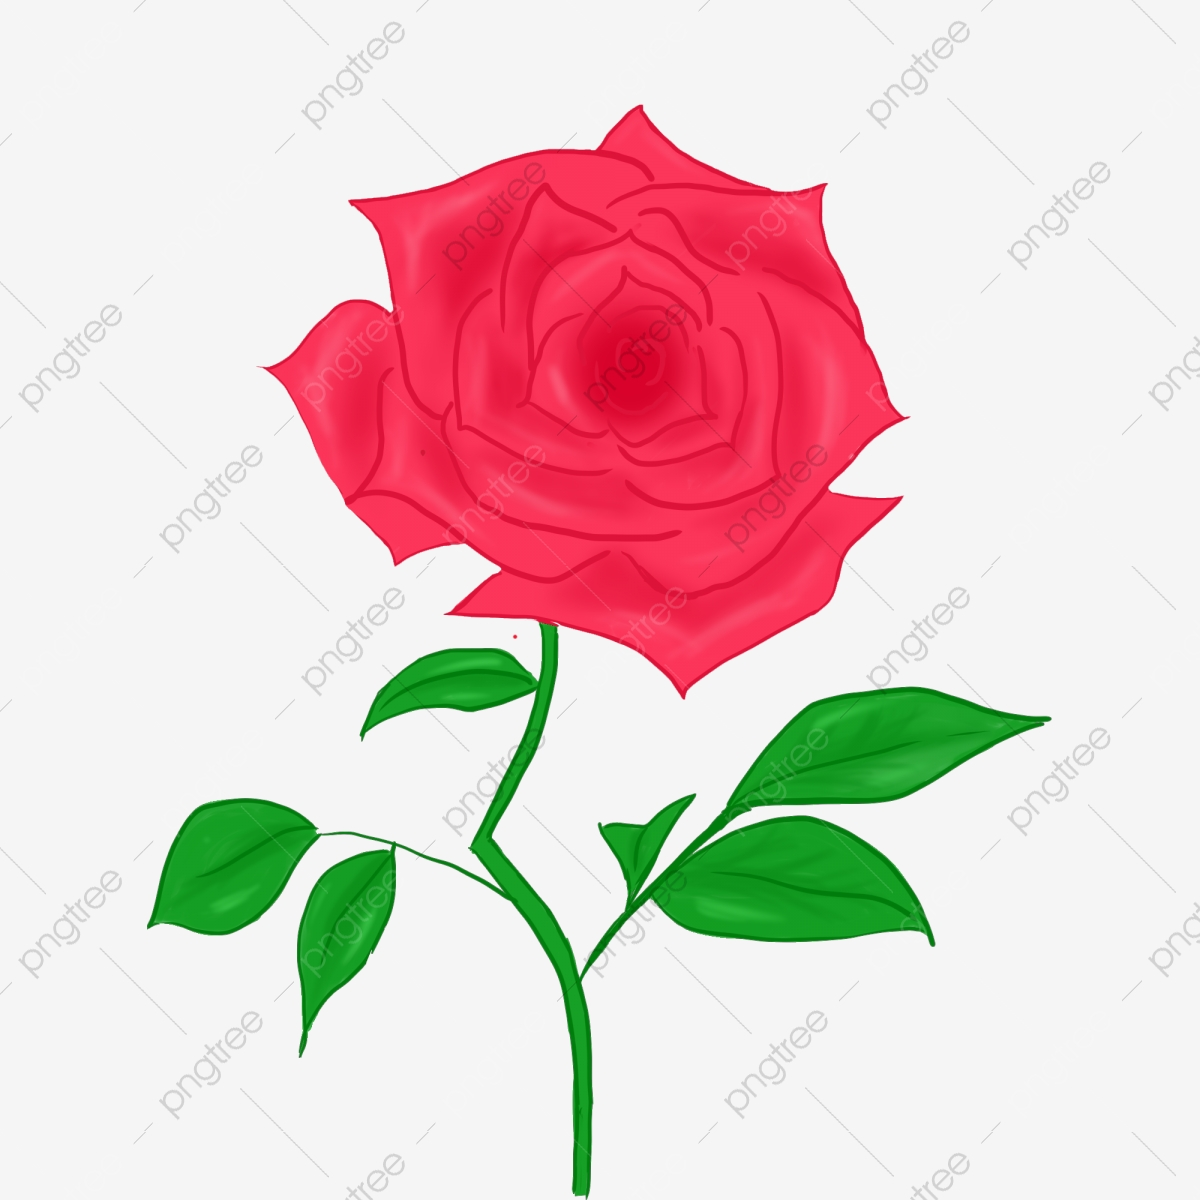 A Flower Flower Red Rose Beautiful Flowers Hand Painted Flower Branches Love Rose Love Png Transparent Clipart Image And Psd File For Free Download,Brown Color Combination For Bedroom